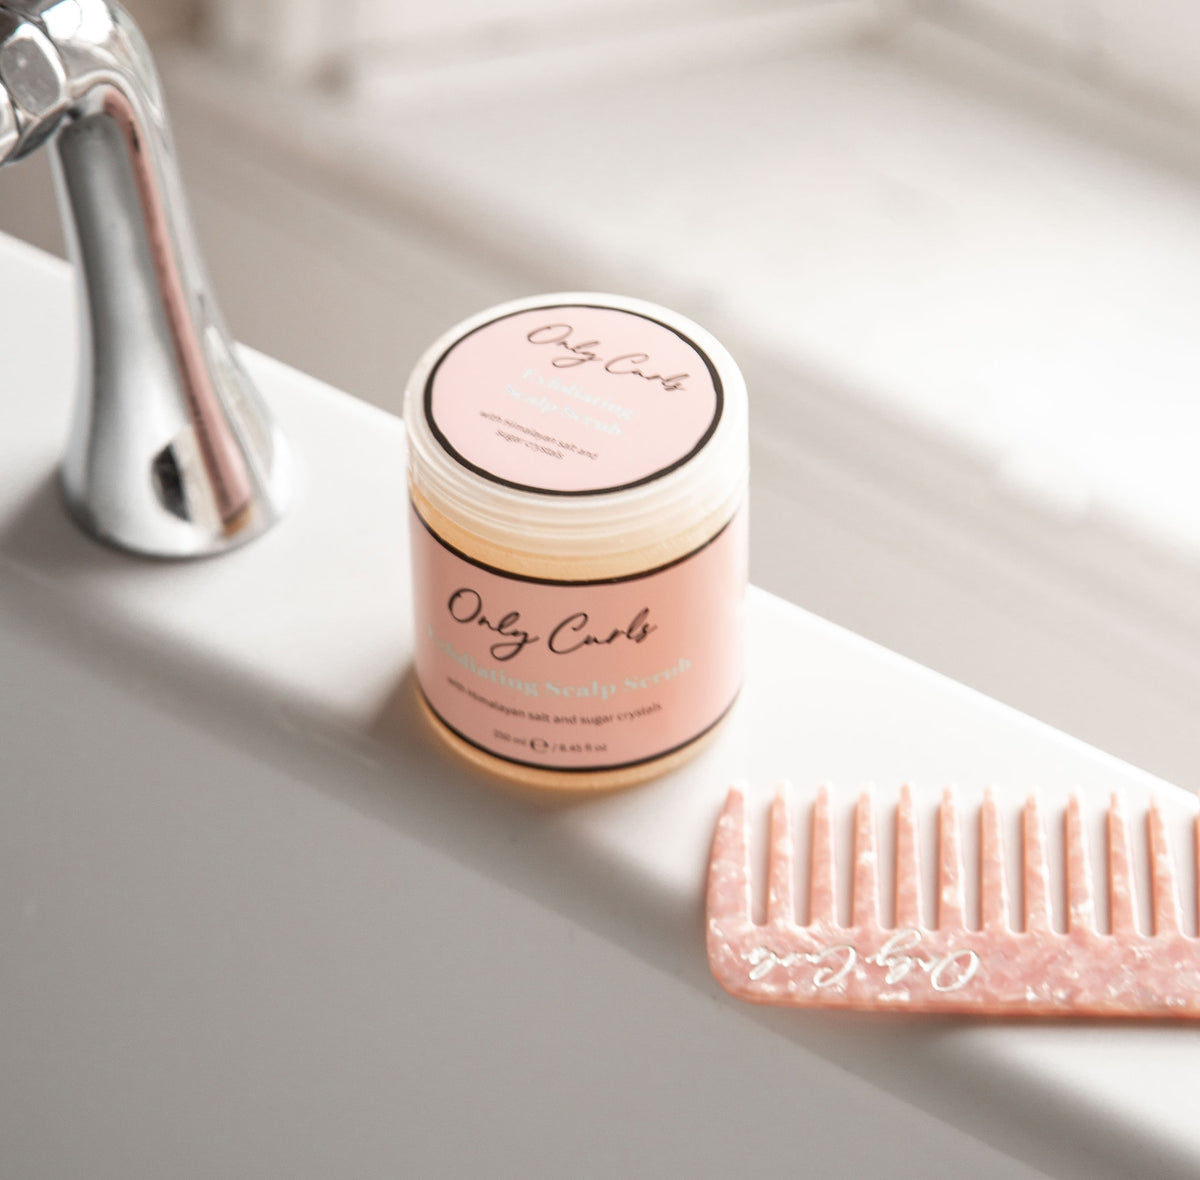 Exfoliating Scalp Scrub in the bath with comb by Only Curls